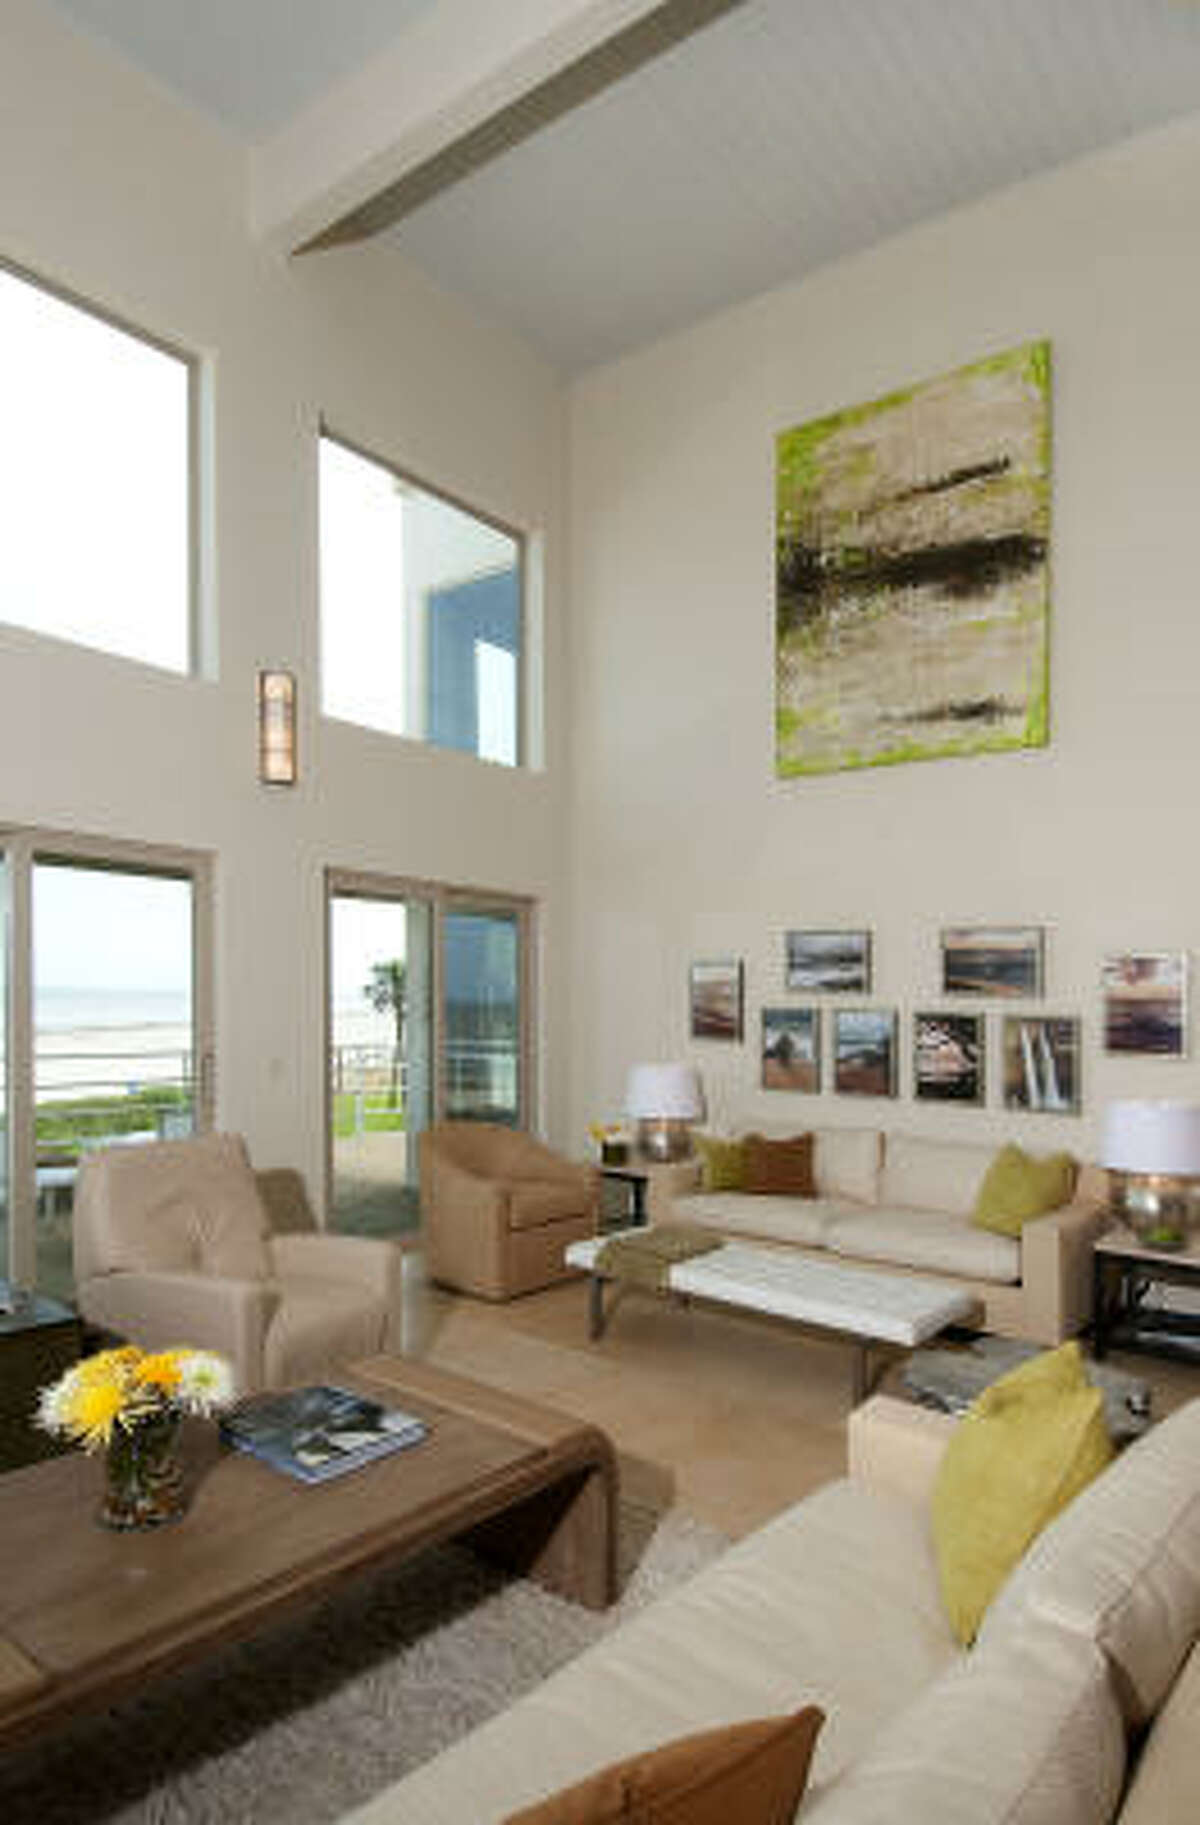 The living room's light-colored walls, floors and furnishings don't distract from the beautiful beach environment. The large-scale painting, Aquarela Verde by Mario Sergio, is from Cantoni.